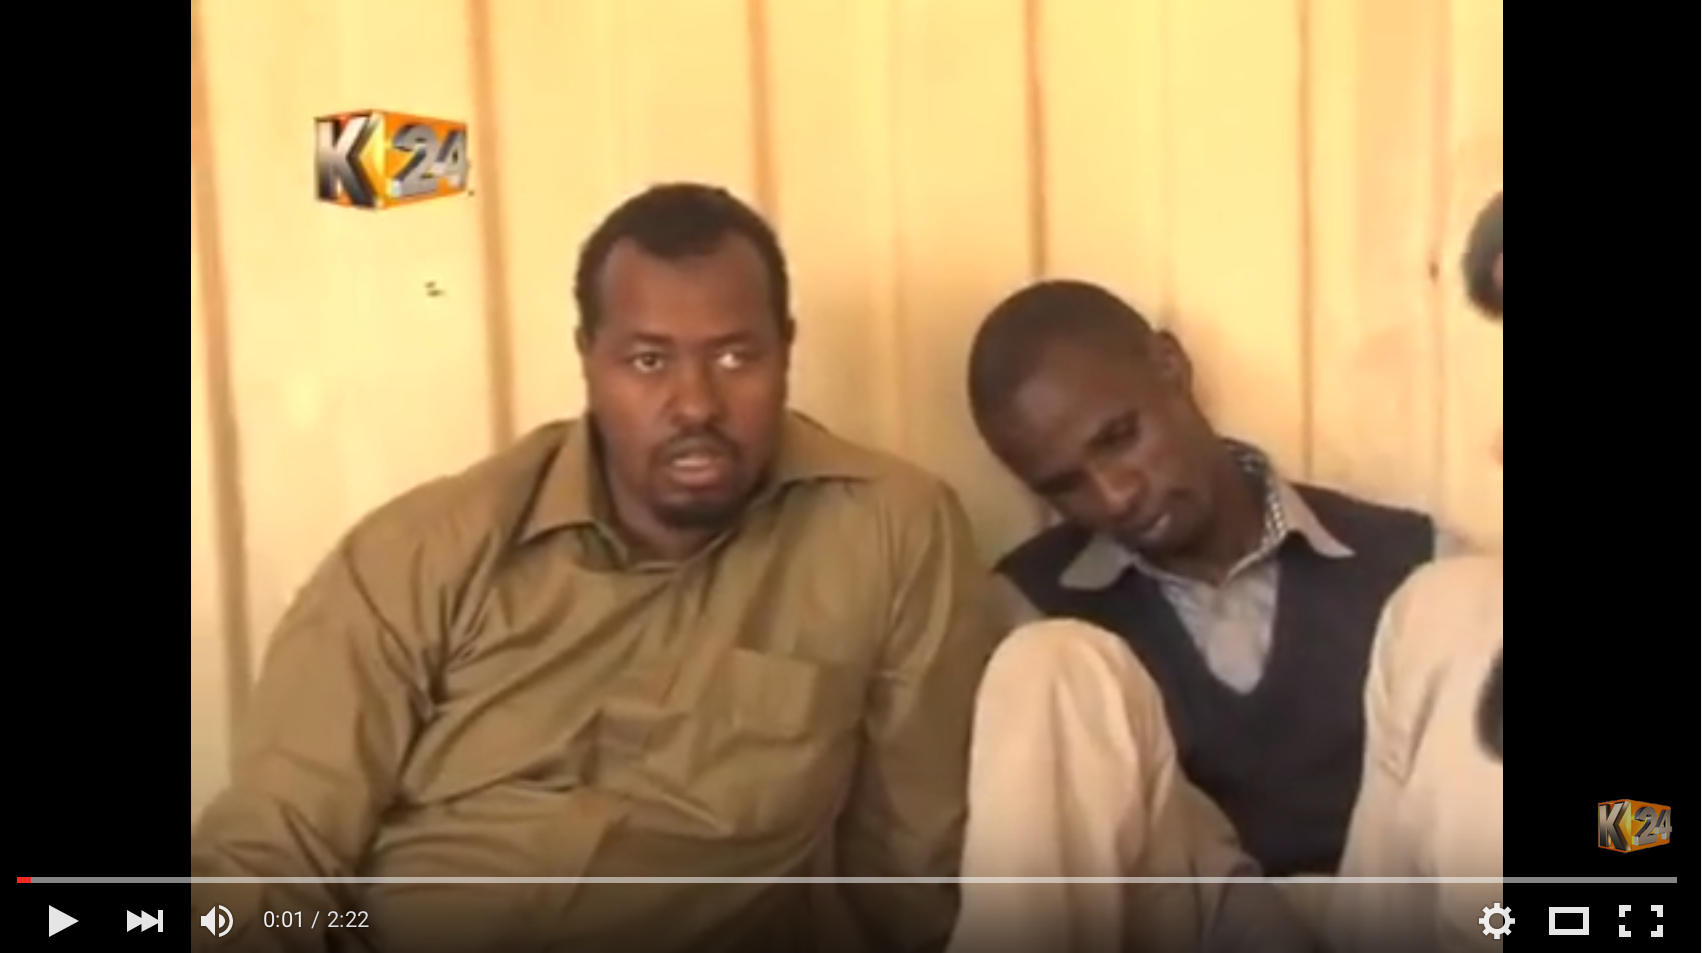 Kenya:Video Dahabshiil manager charged with recruiting young Kenyans to Al-Shabaab